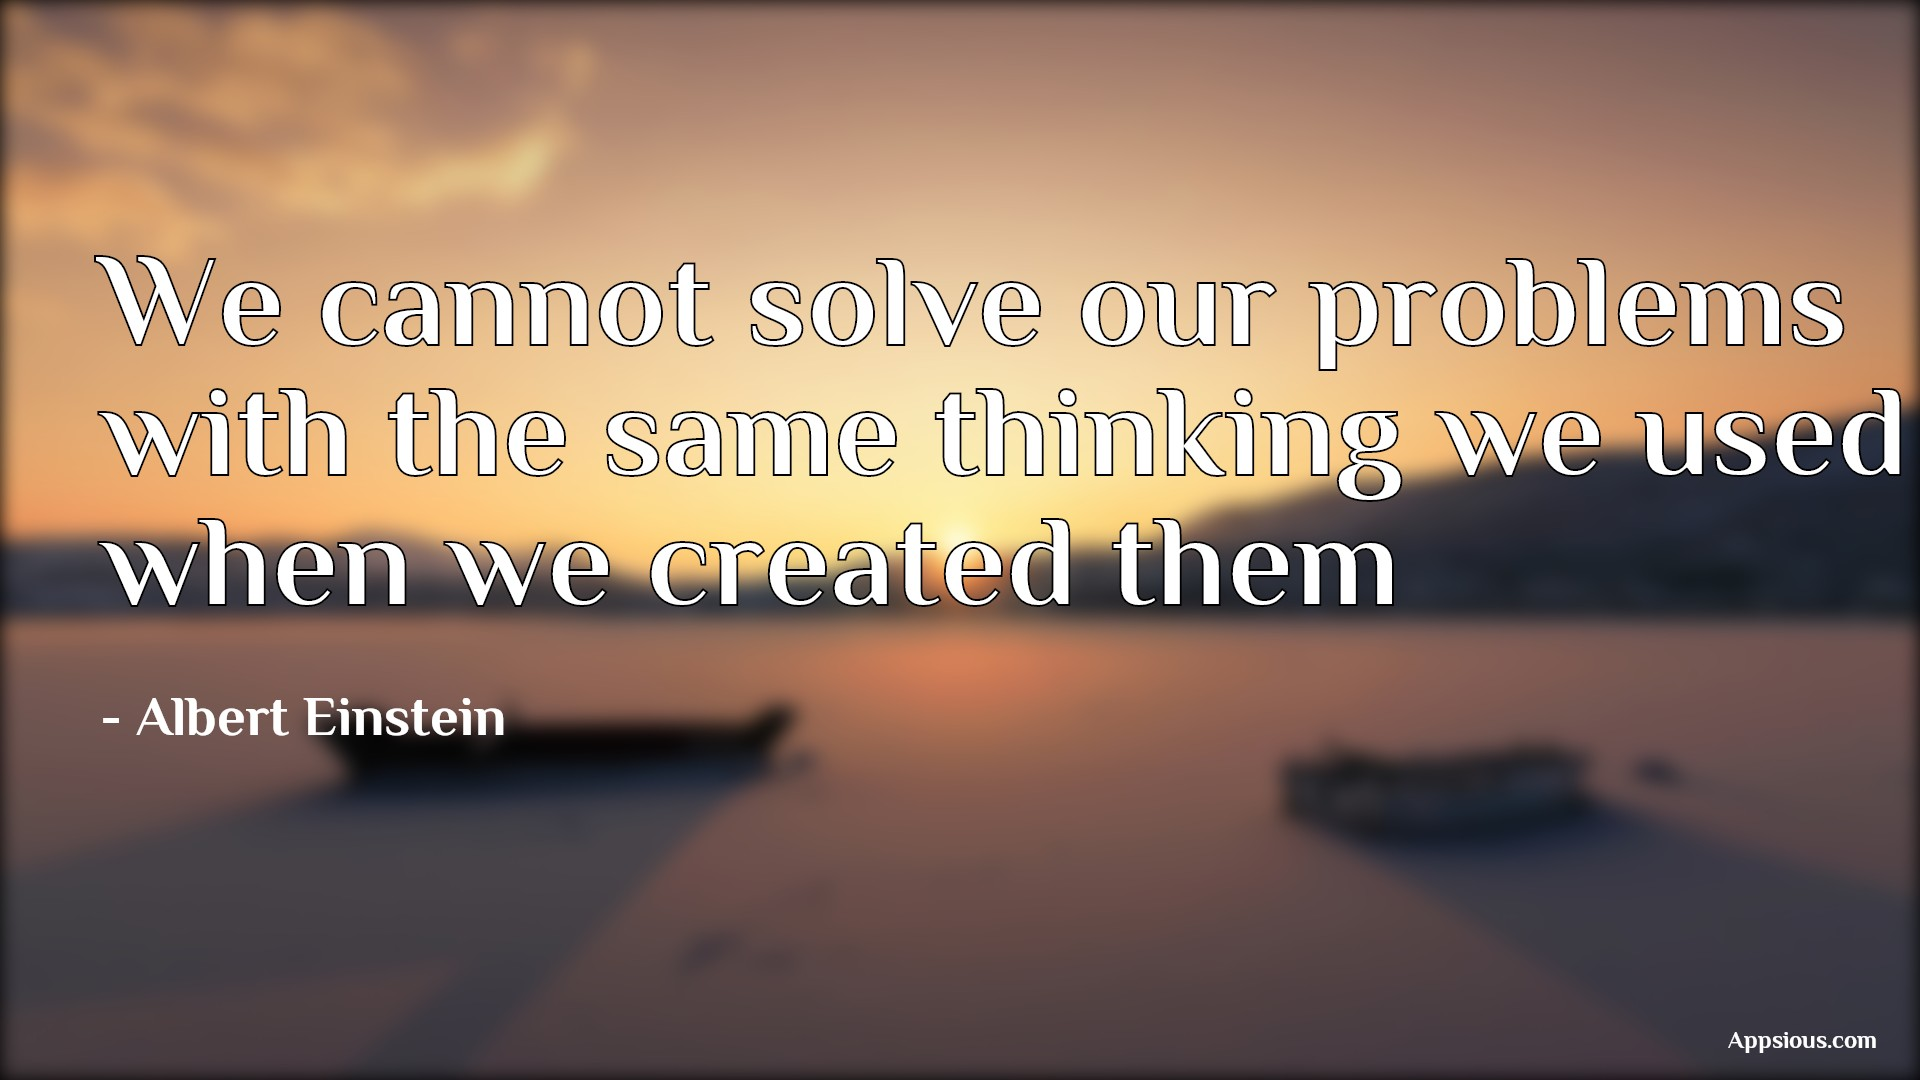 We cannot solve our problems with the same thinking we used when we created them